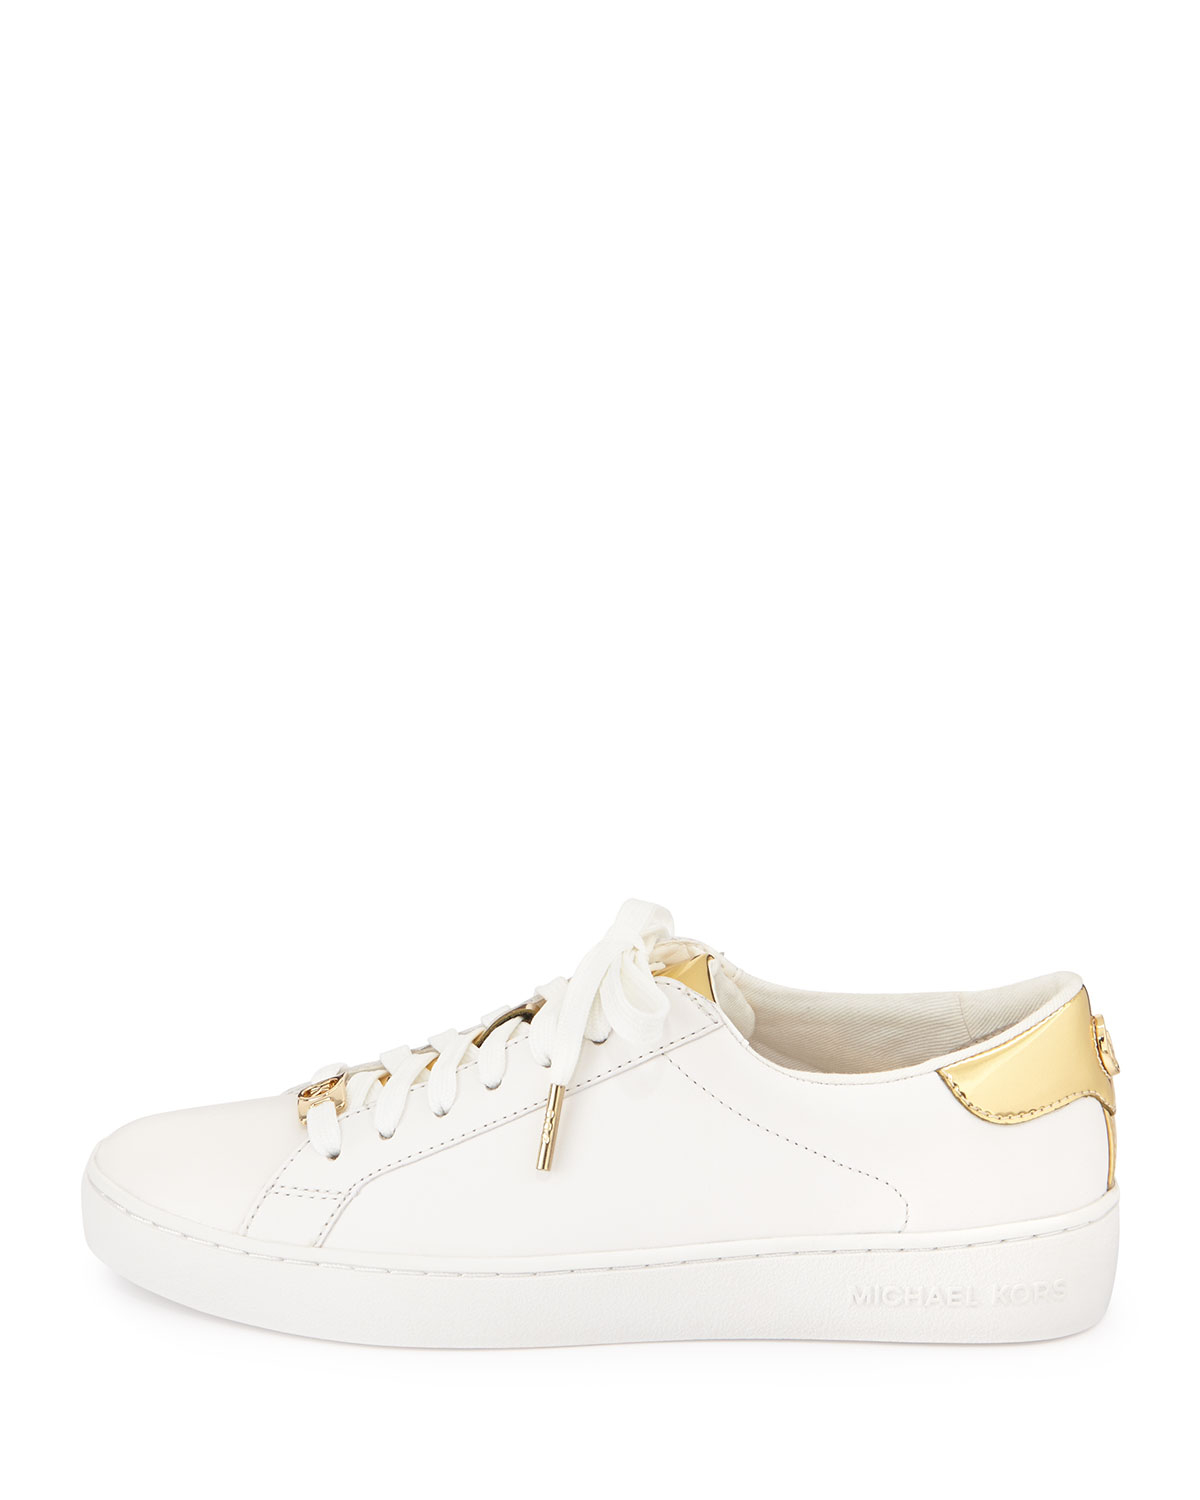 michael michael kors irving leather lace up sneaker in white lyst. Black Bedroom Furniture Sets. Home Design Ideas